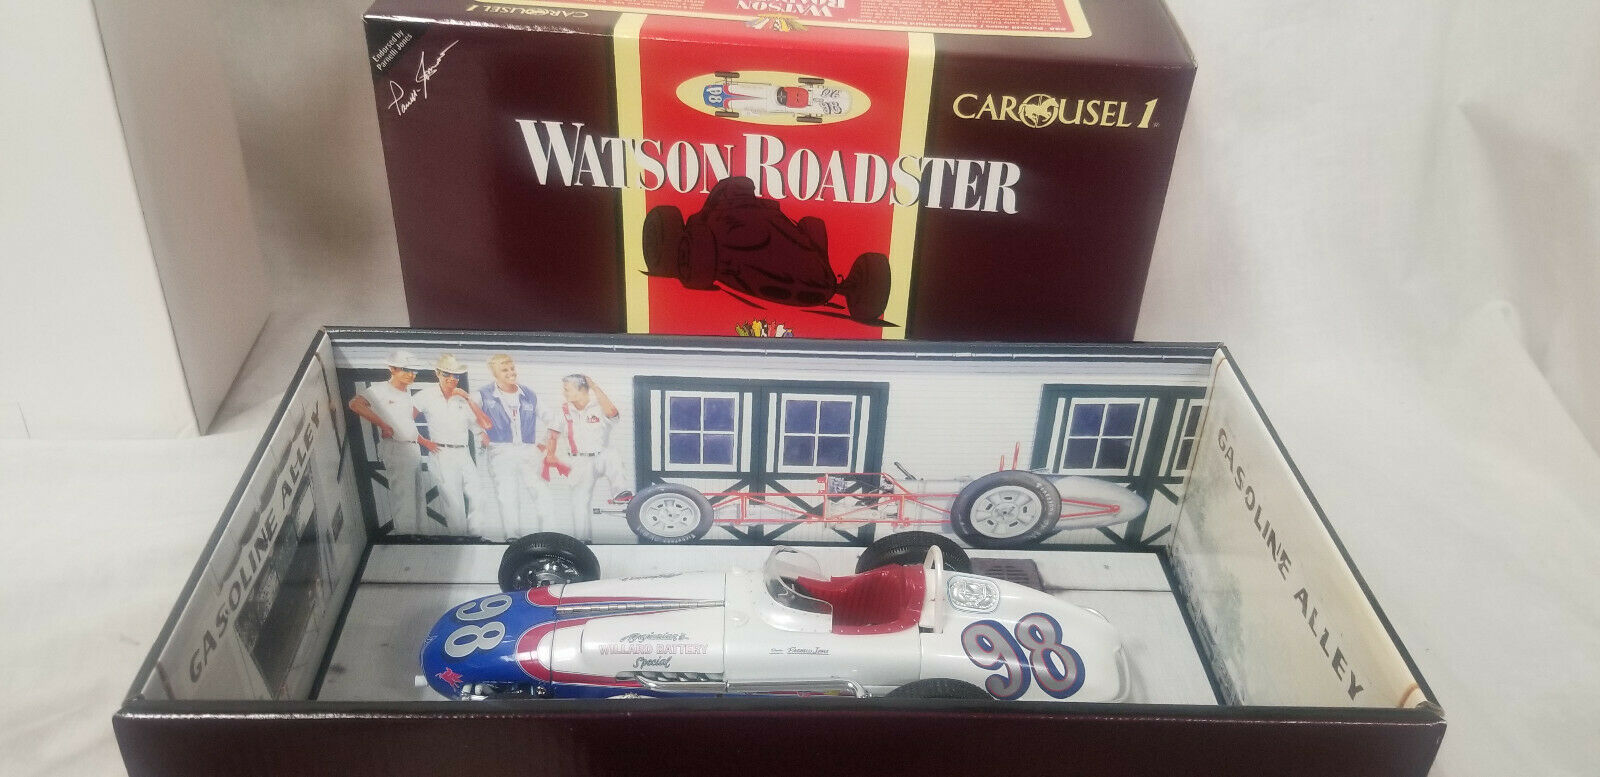 Carousel 1  4403 Winston Roadster '62 Indy 500 Pole Parnell Jones